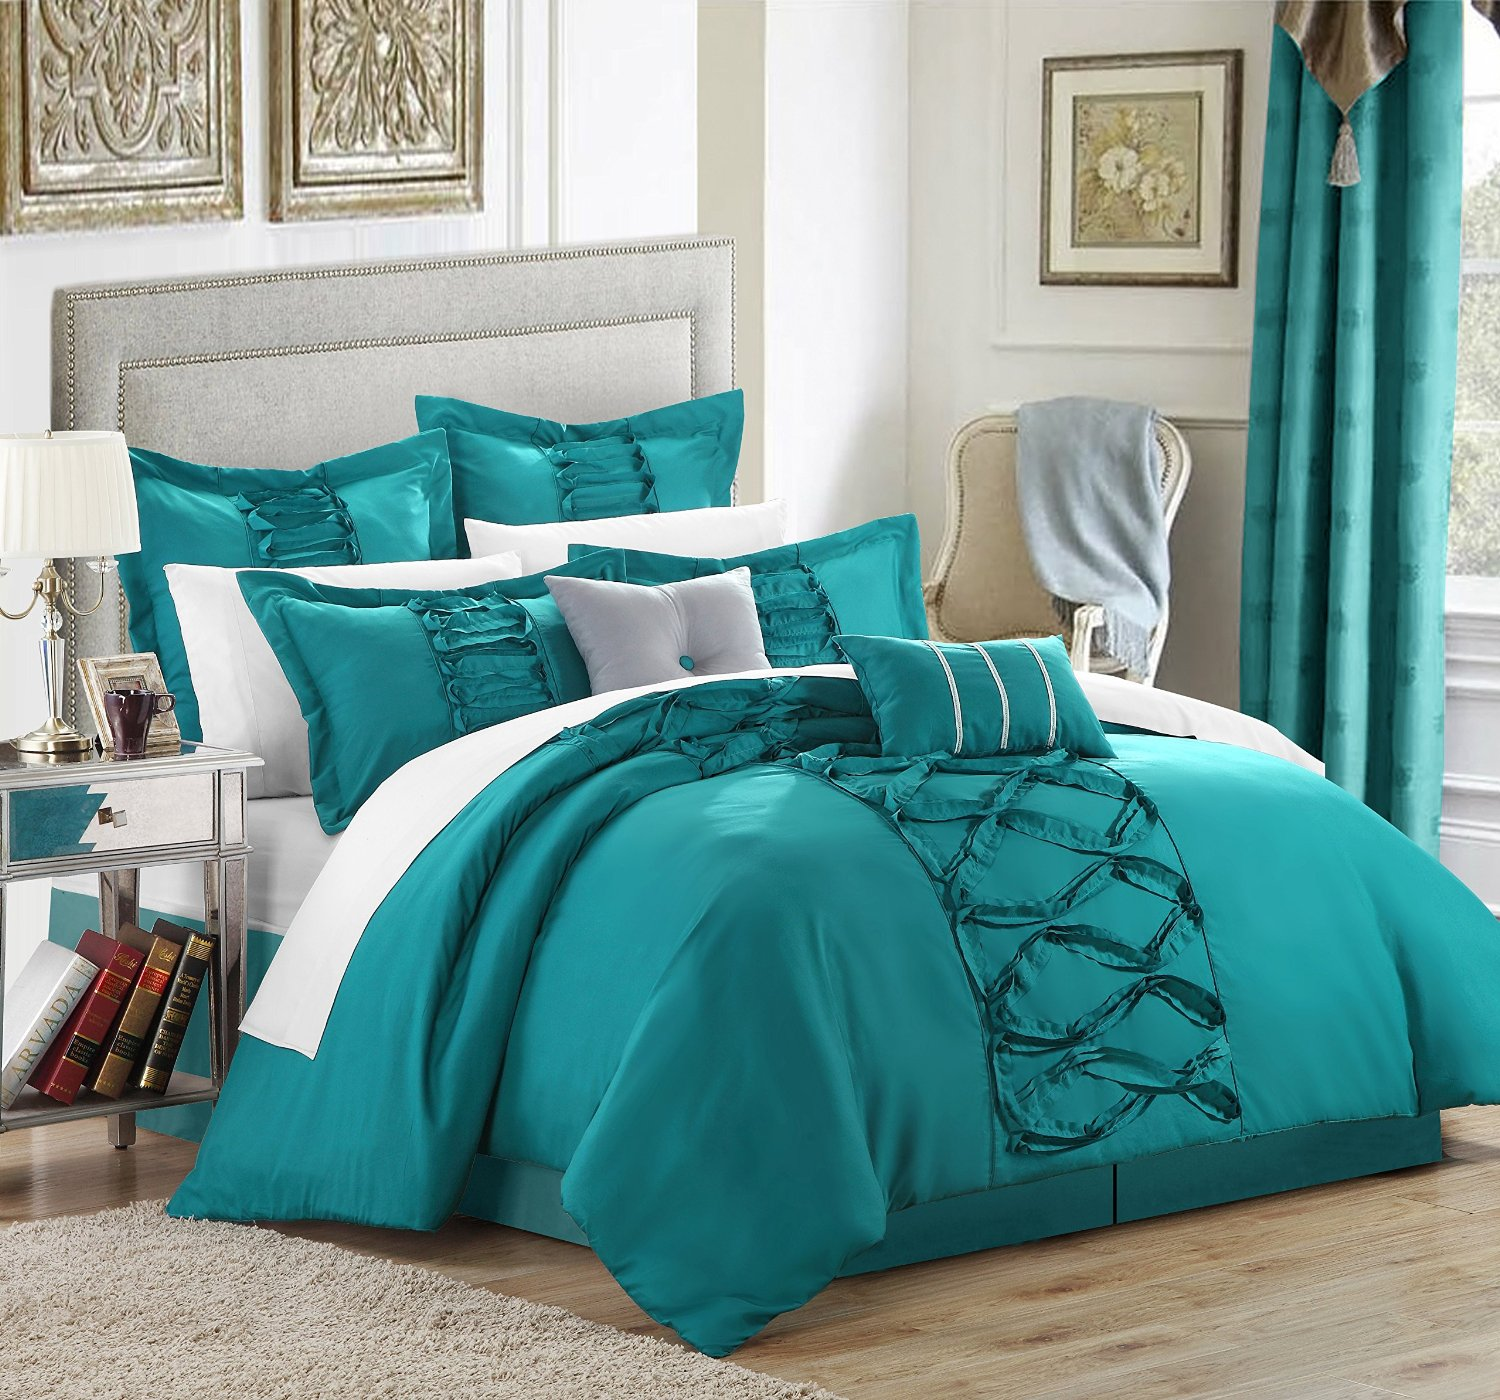 purple duvet sets design teal for cover queen girl bedding